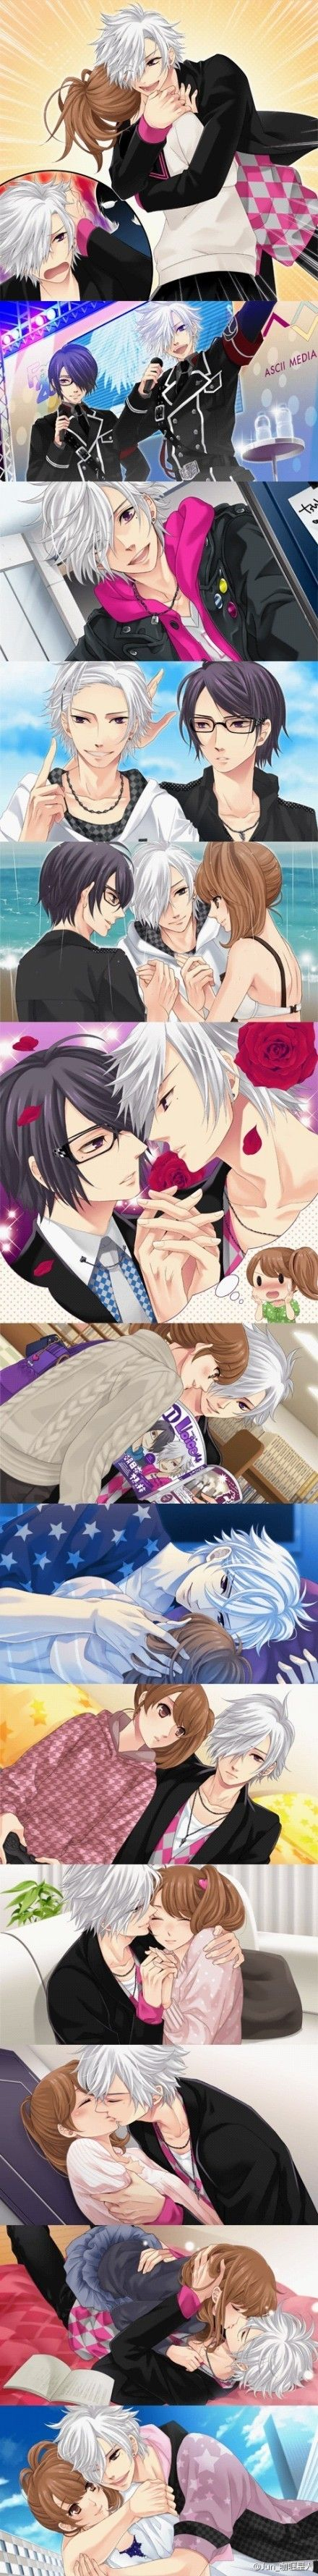 Brothers Conflict: Tsubaki and Ema